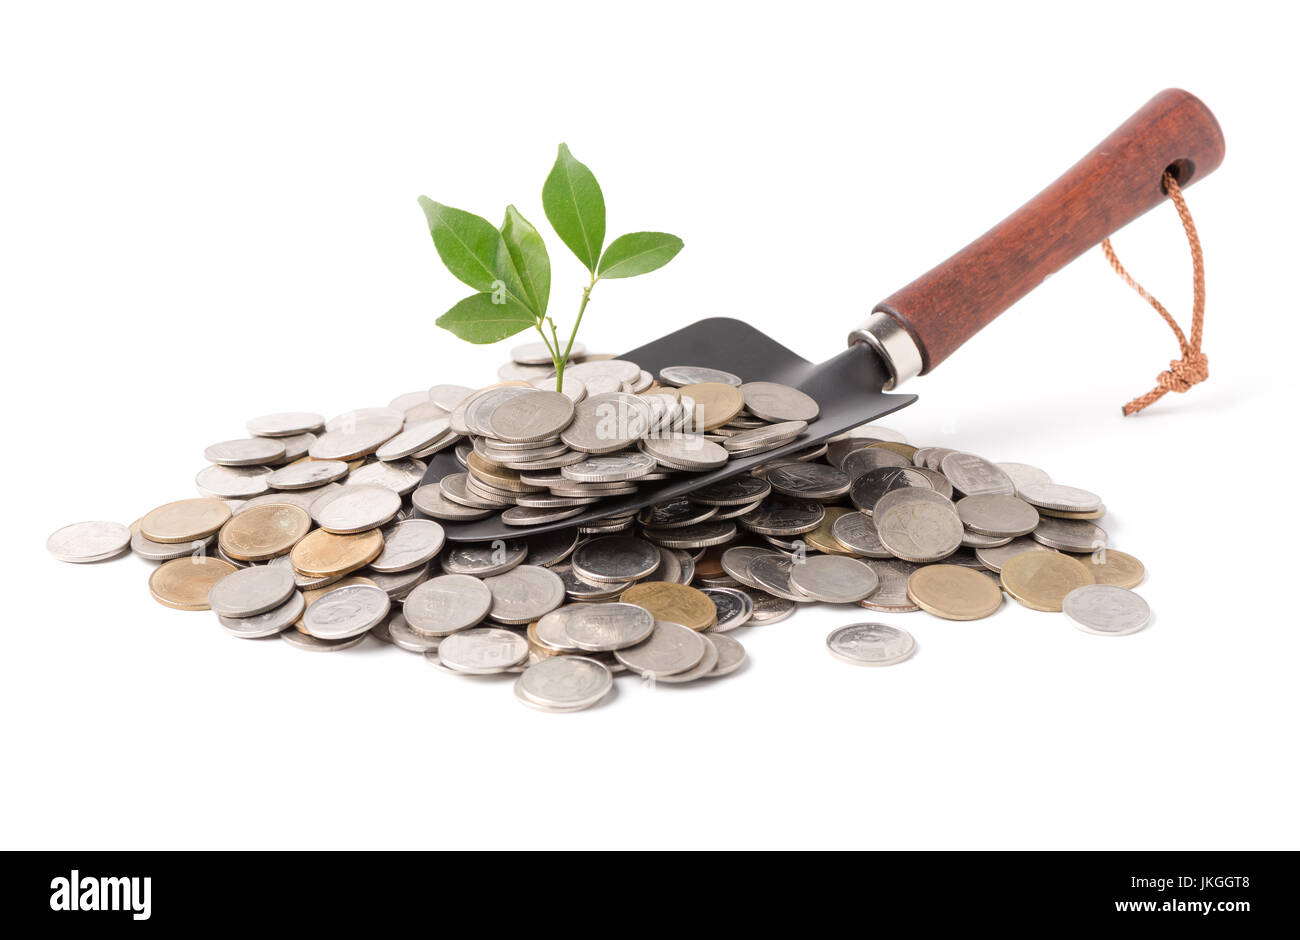 plant growing out of silver coins on gardening trowel isolated on white background, saving, investment and Interest - Stock Image